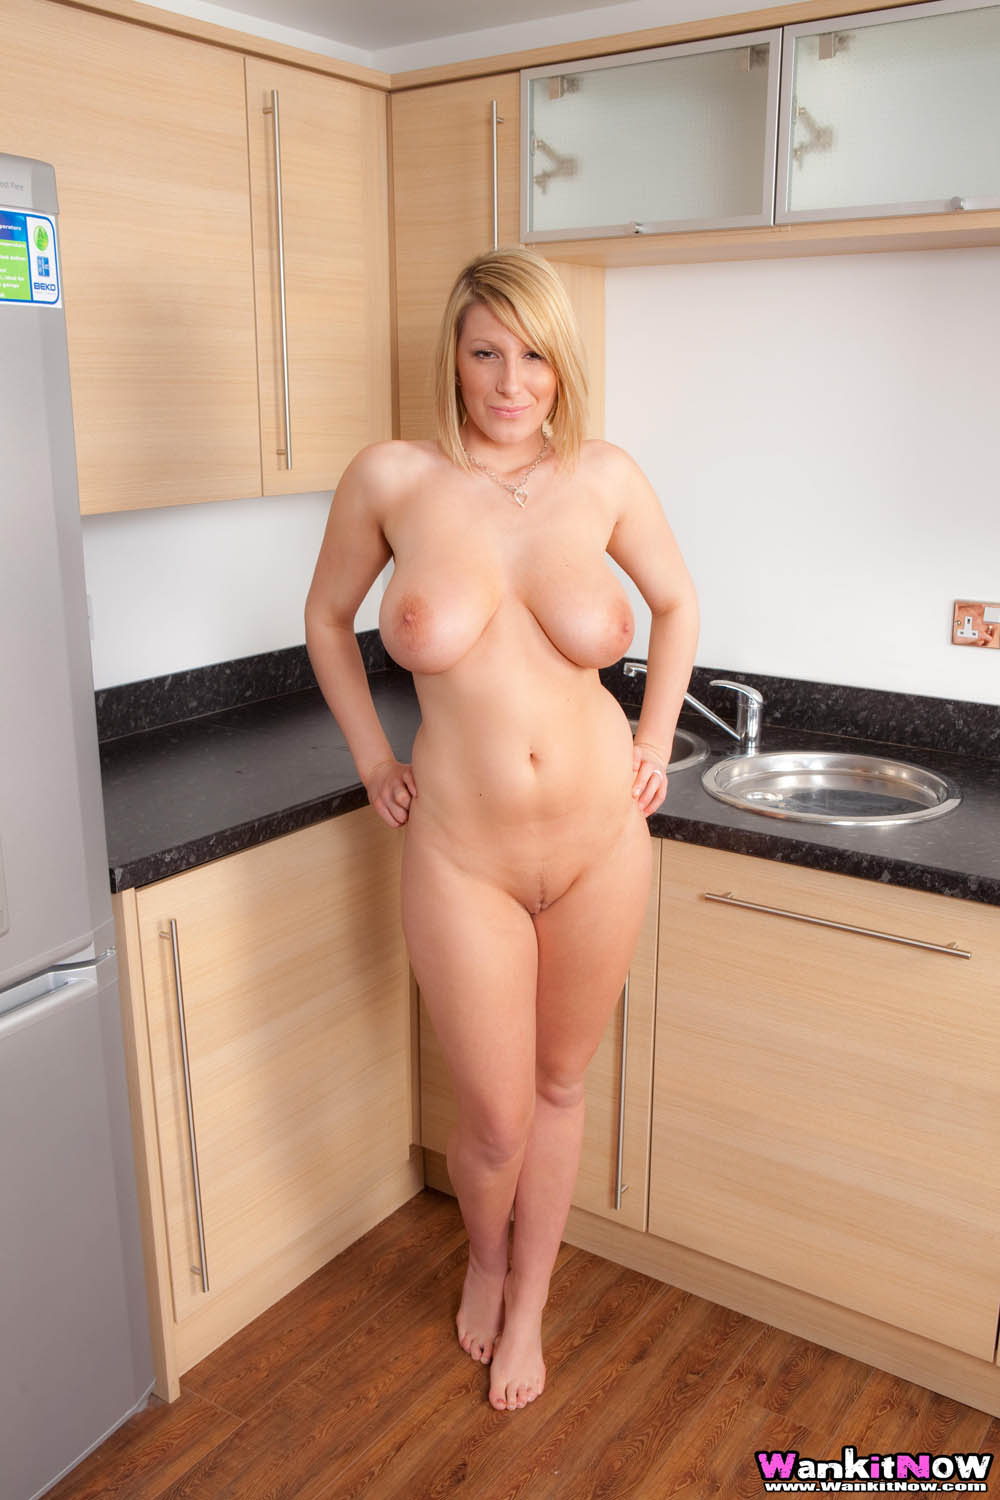 Are mistaken. Moms nude in kitchen theme